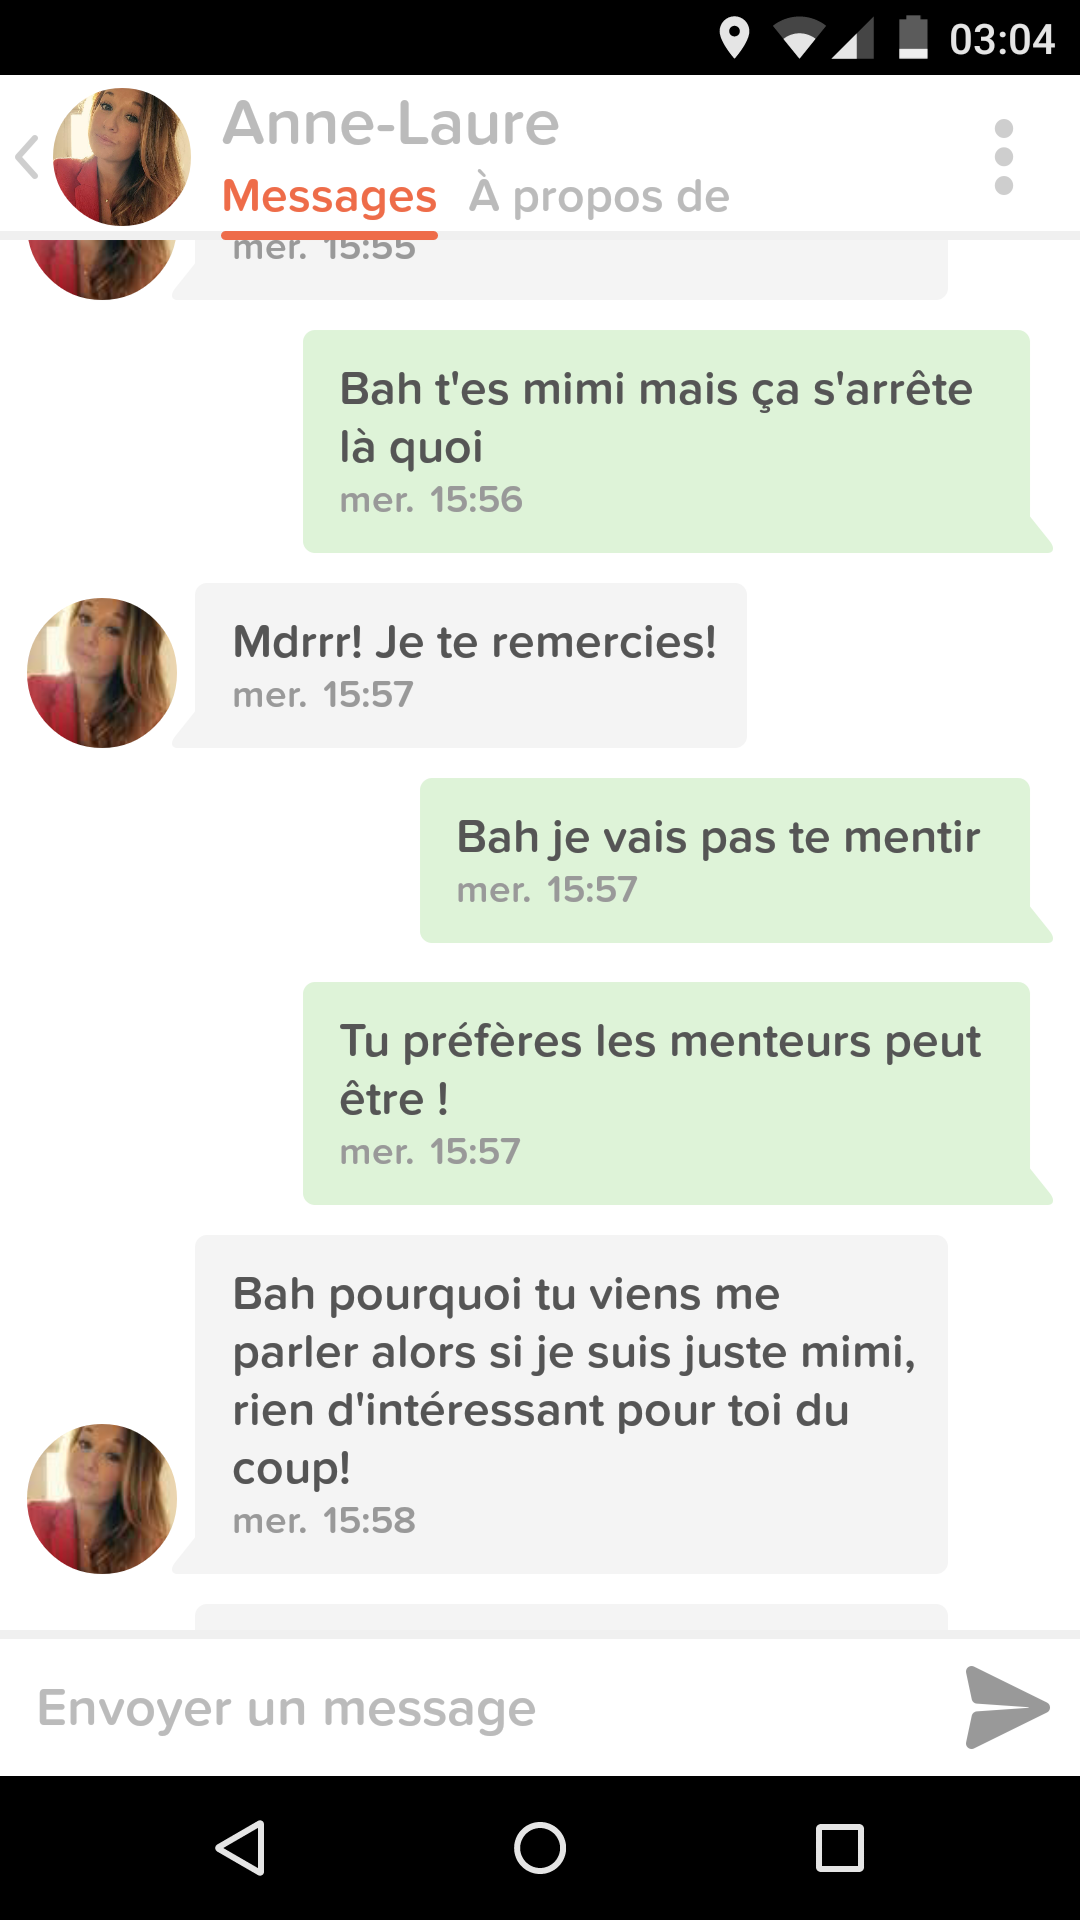 1429838779-anne-laure-4.png